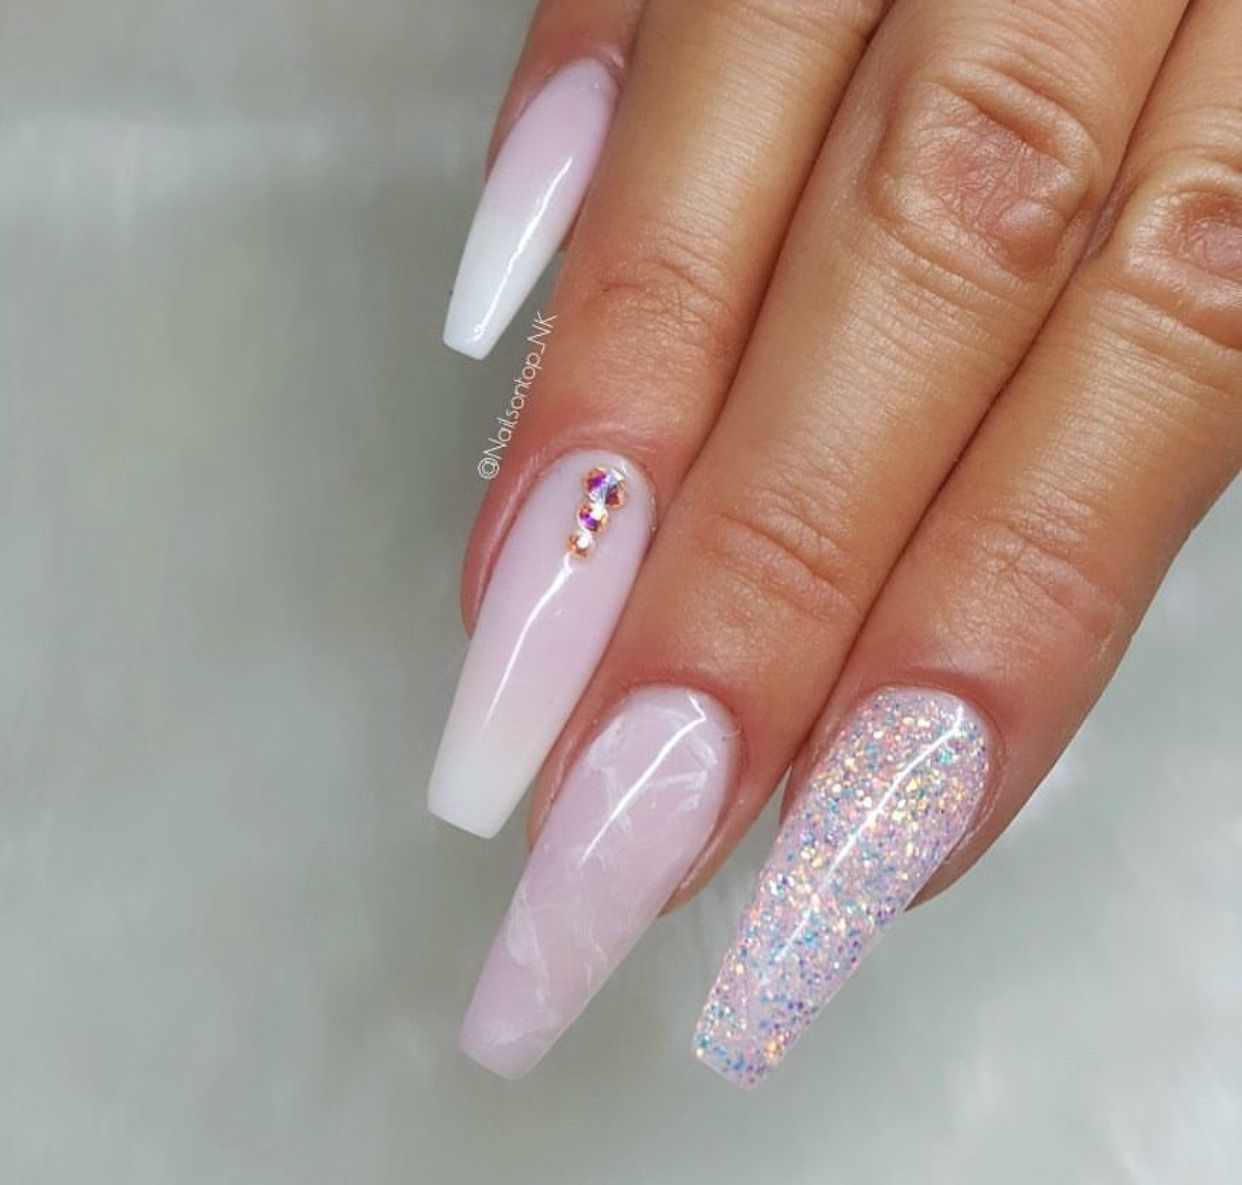 nailsontop @Hair,Nails,And Style  Cute nail art, Acrylic nail